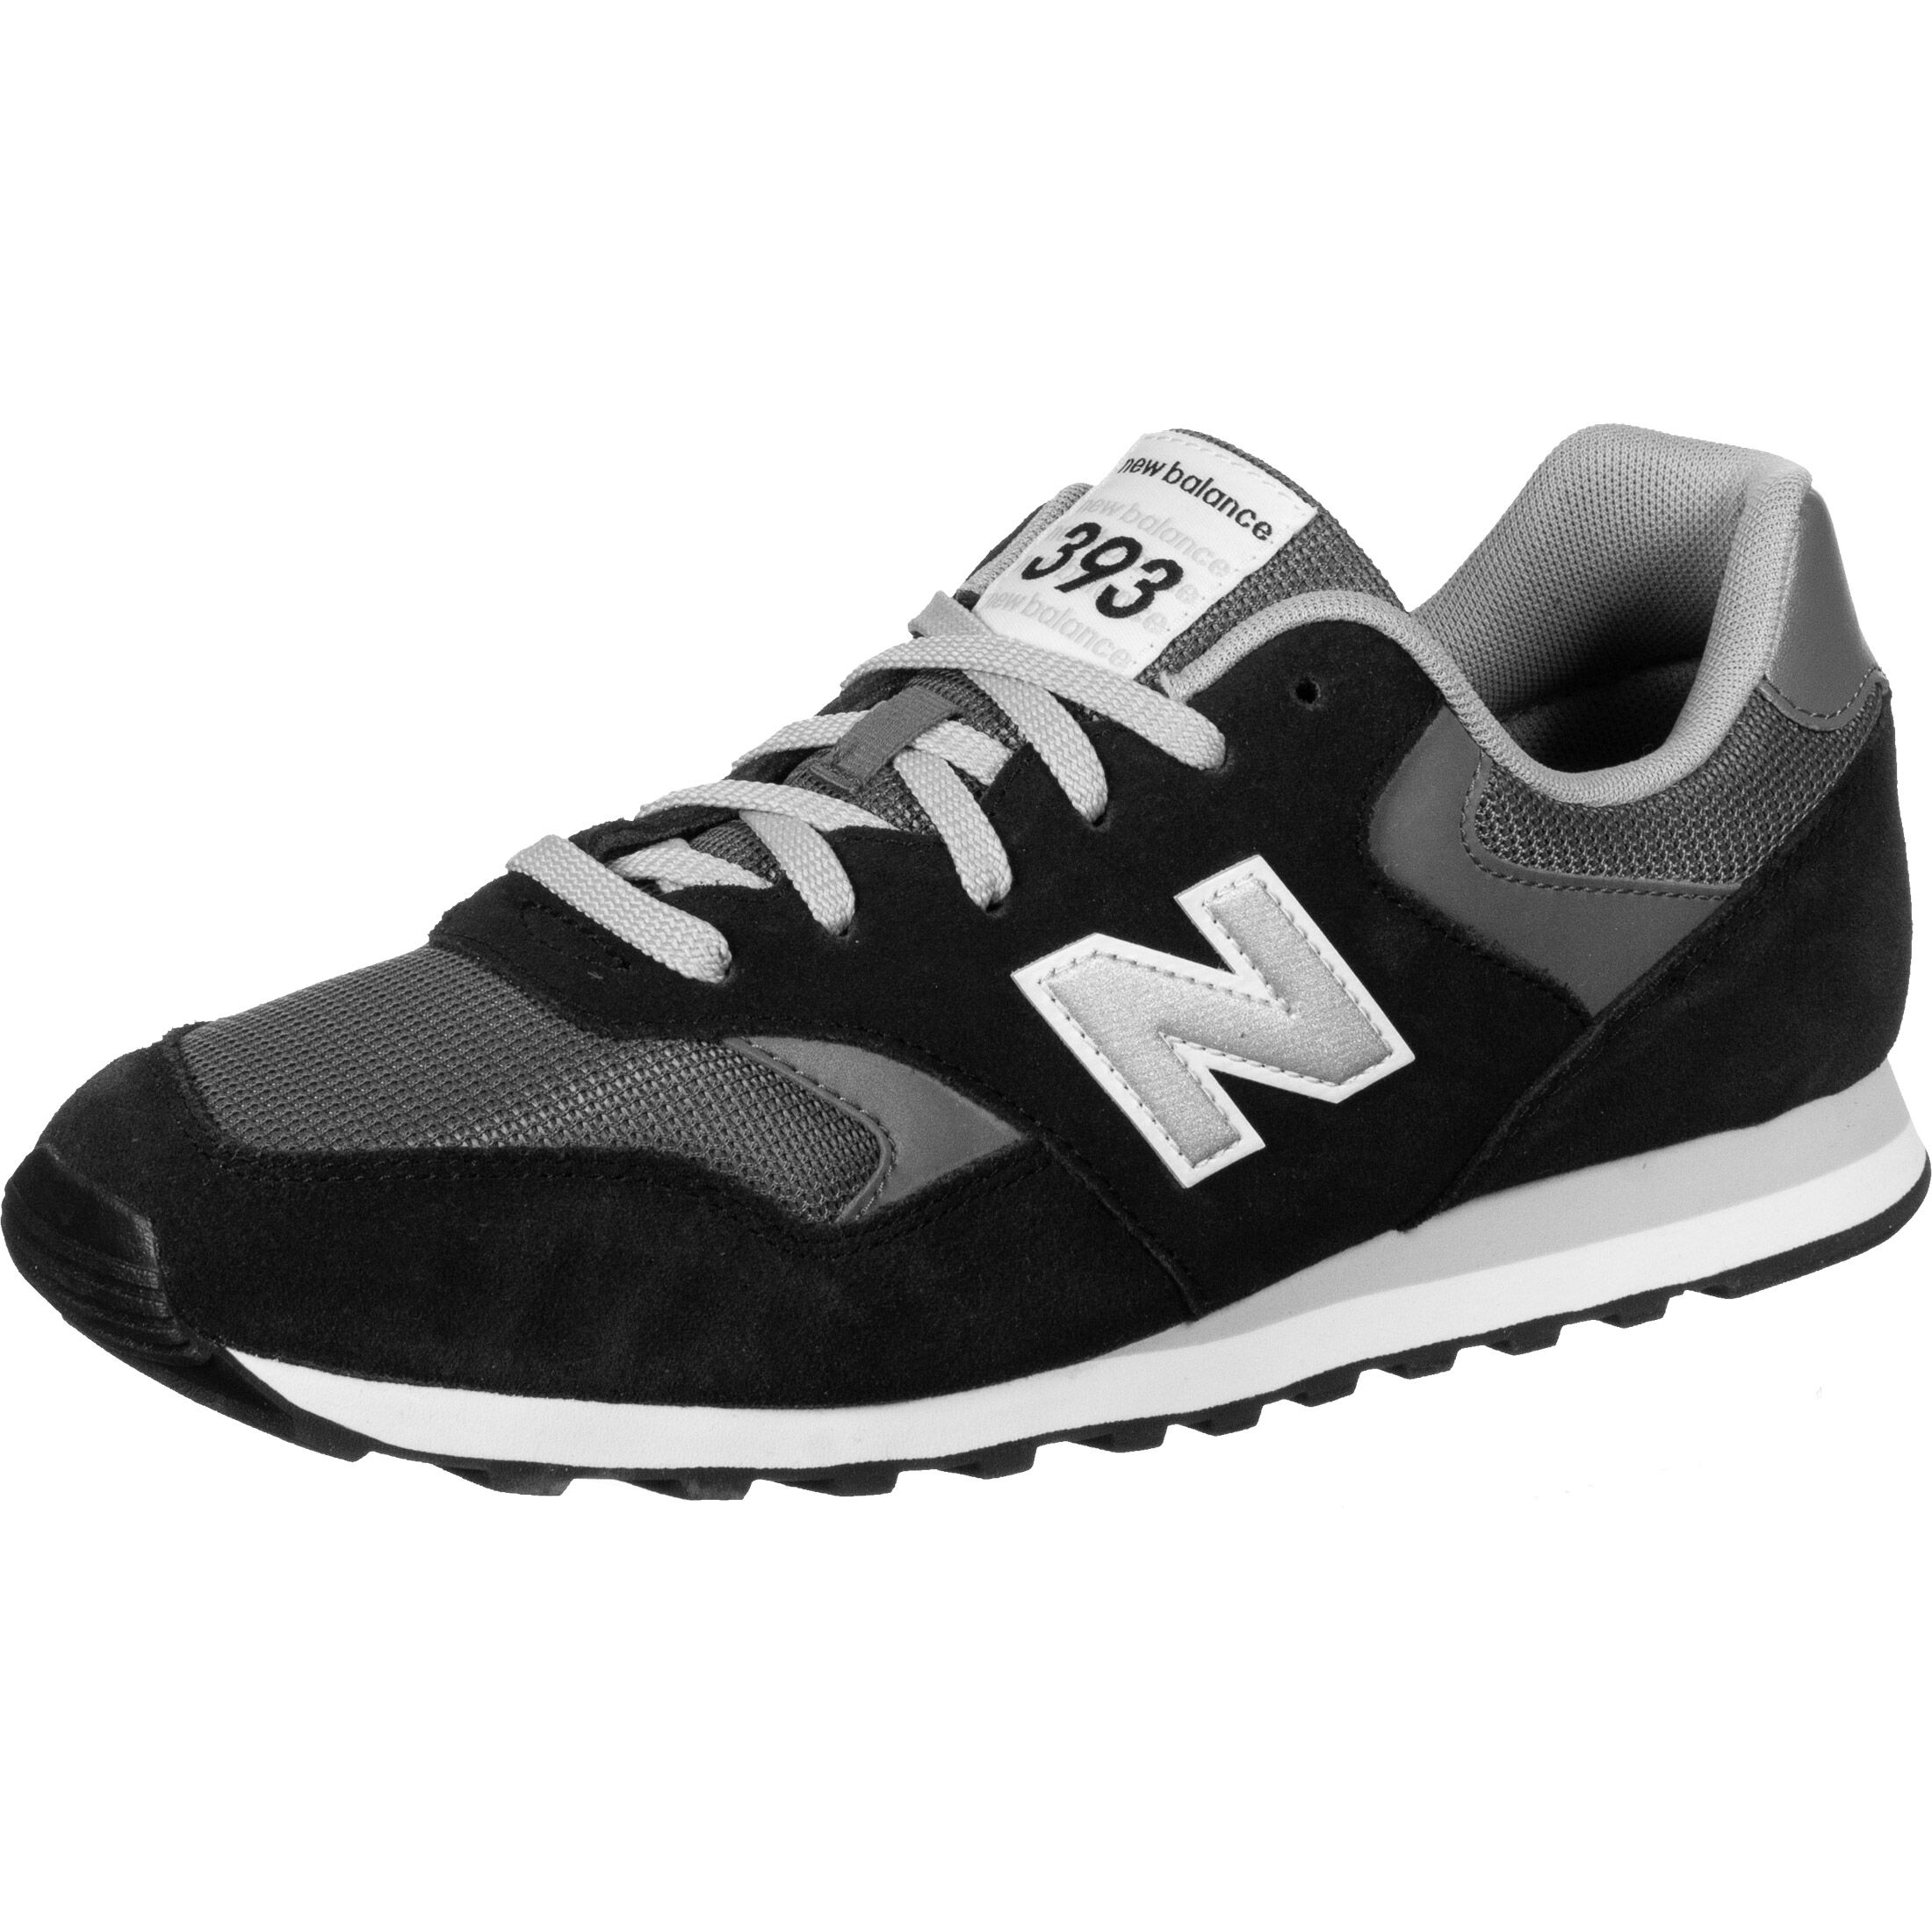 New Balance 393 - Sneakers Low at Stylefile